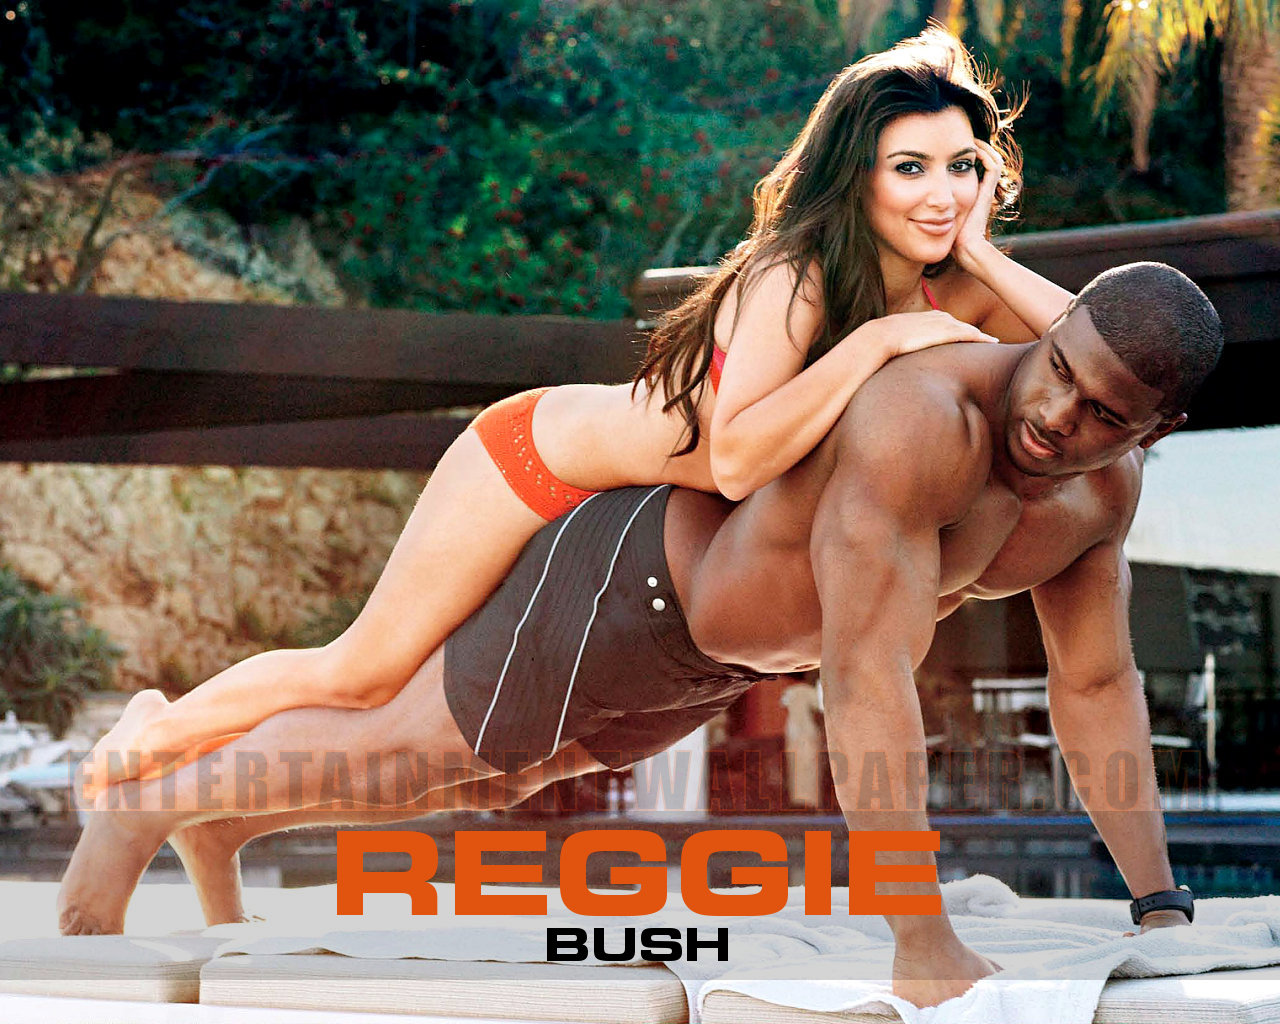 Reggie Bush Wallpaper - Original size, download now.